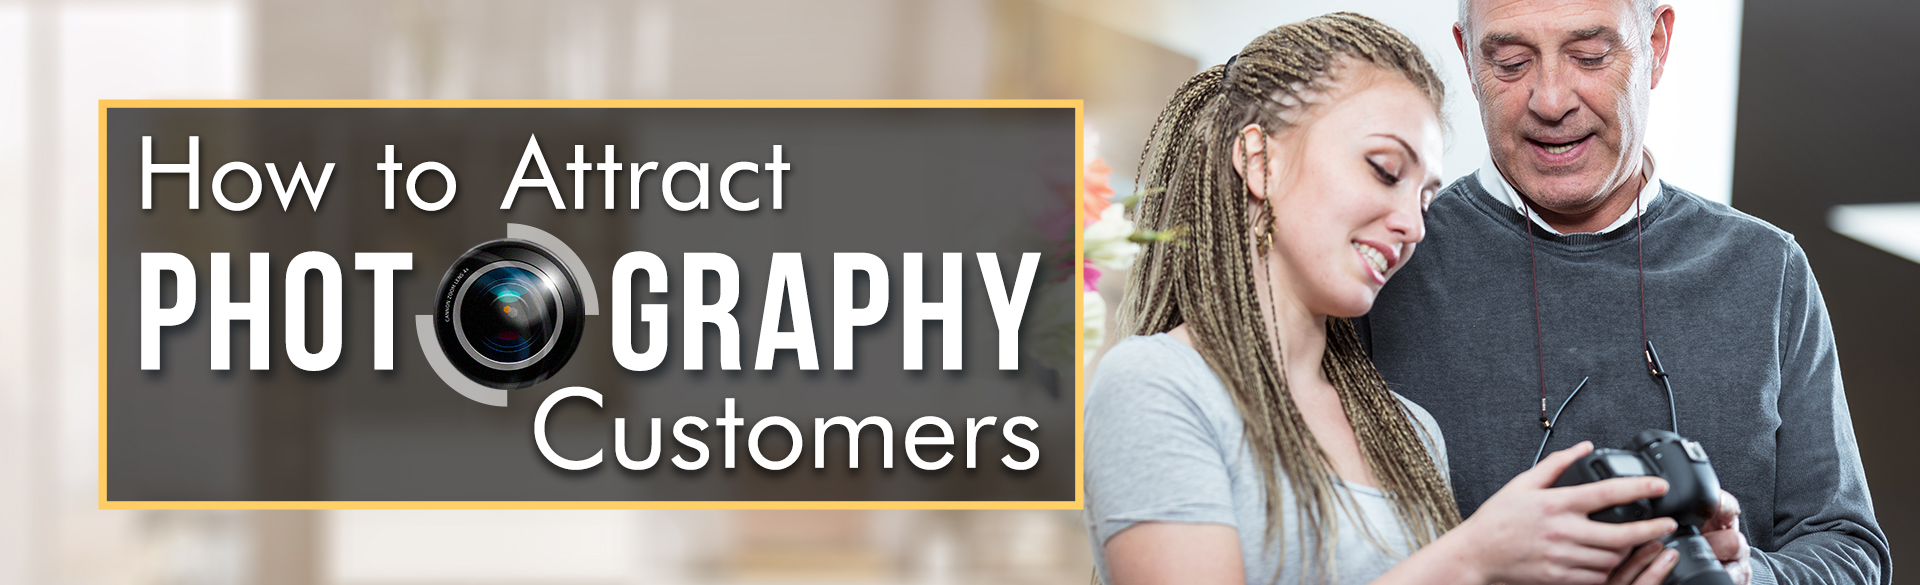 Photography Business Banner